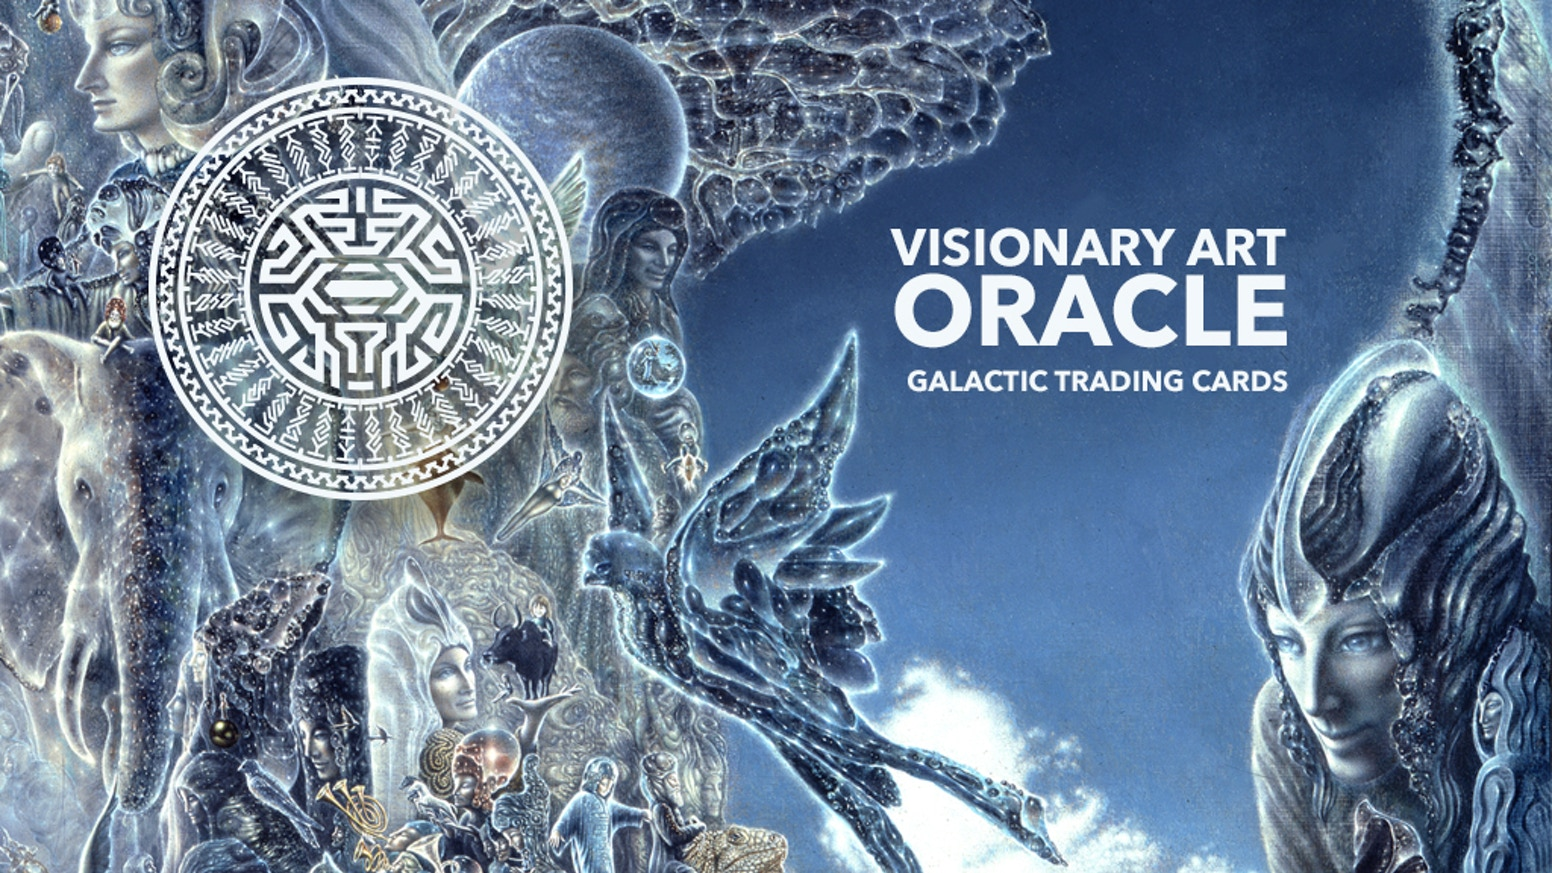 A visionary art microgallery, oracle and artist trading card deck. Missed the kickstarter? You can still pre-order a deck on our website.